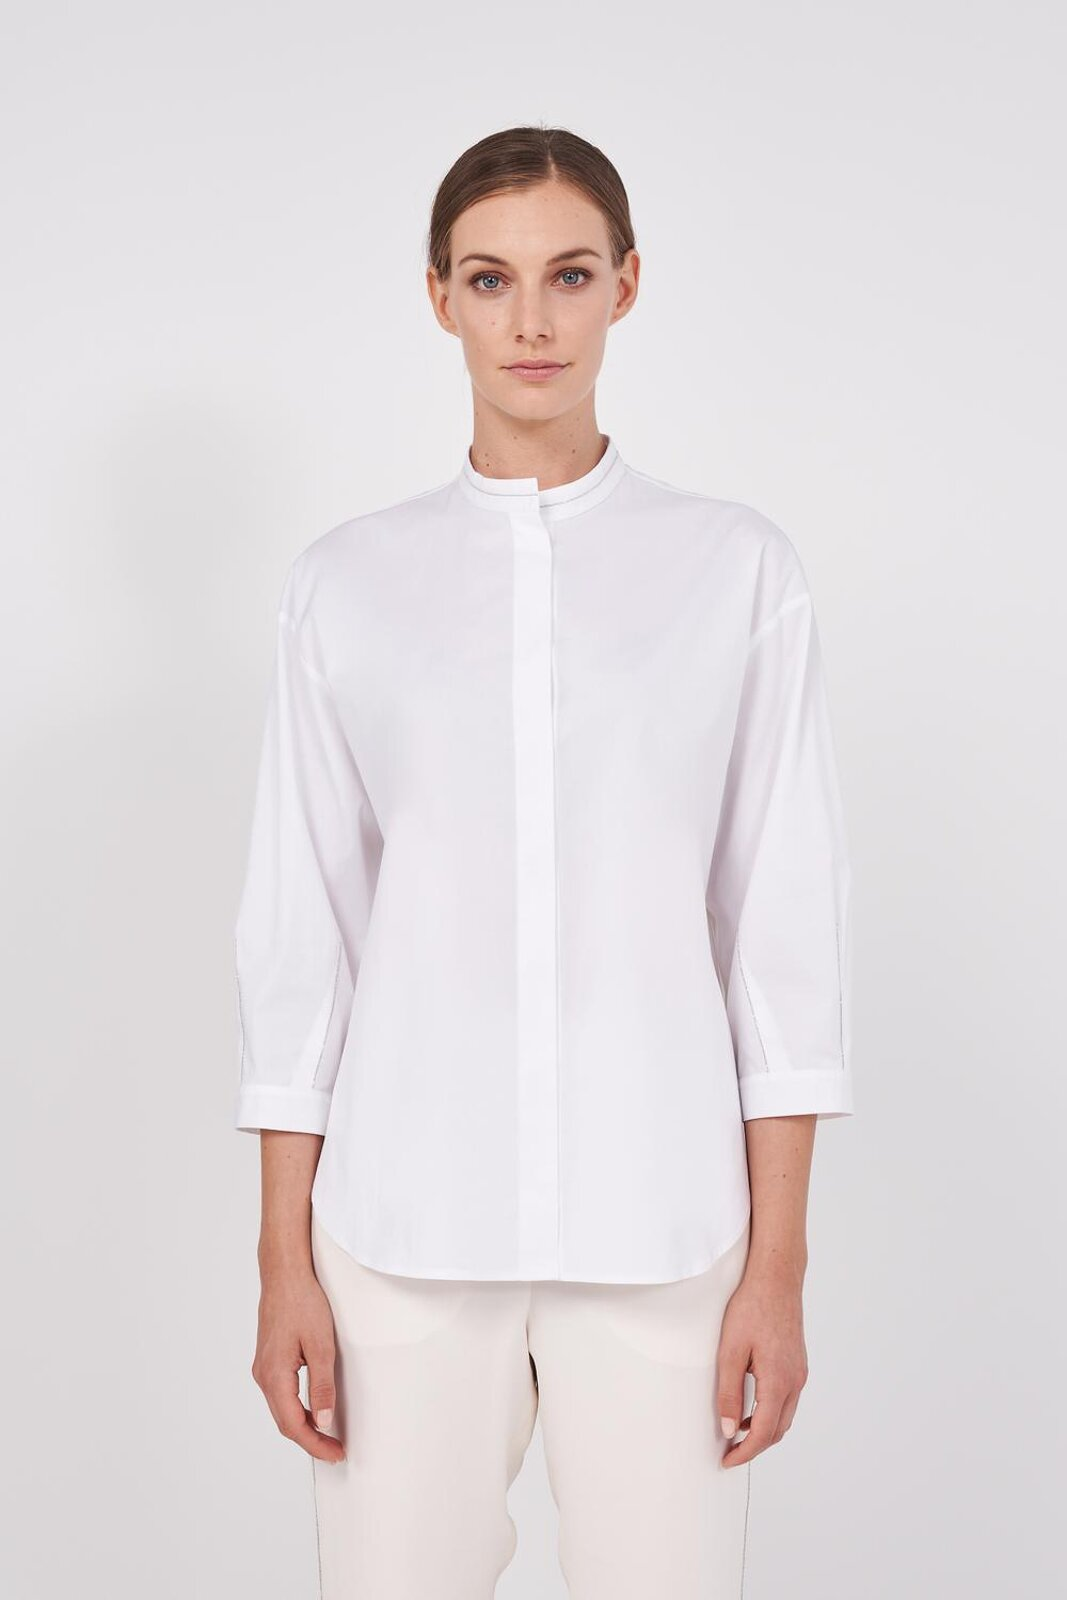 Pure Cotton Slightly Stretch Long Sleeve Shirt. 'Mandarin' Collar, Slightly Balloon Sleeves, Metal Shiny Points On The Sleeve, Closure With Front Hidden Buttons. Soft fit. - Peserico